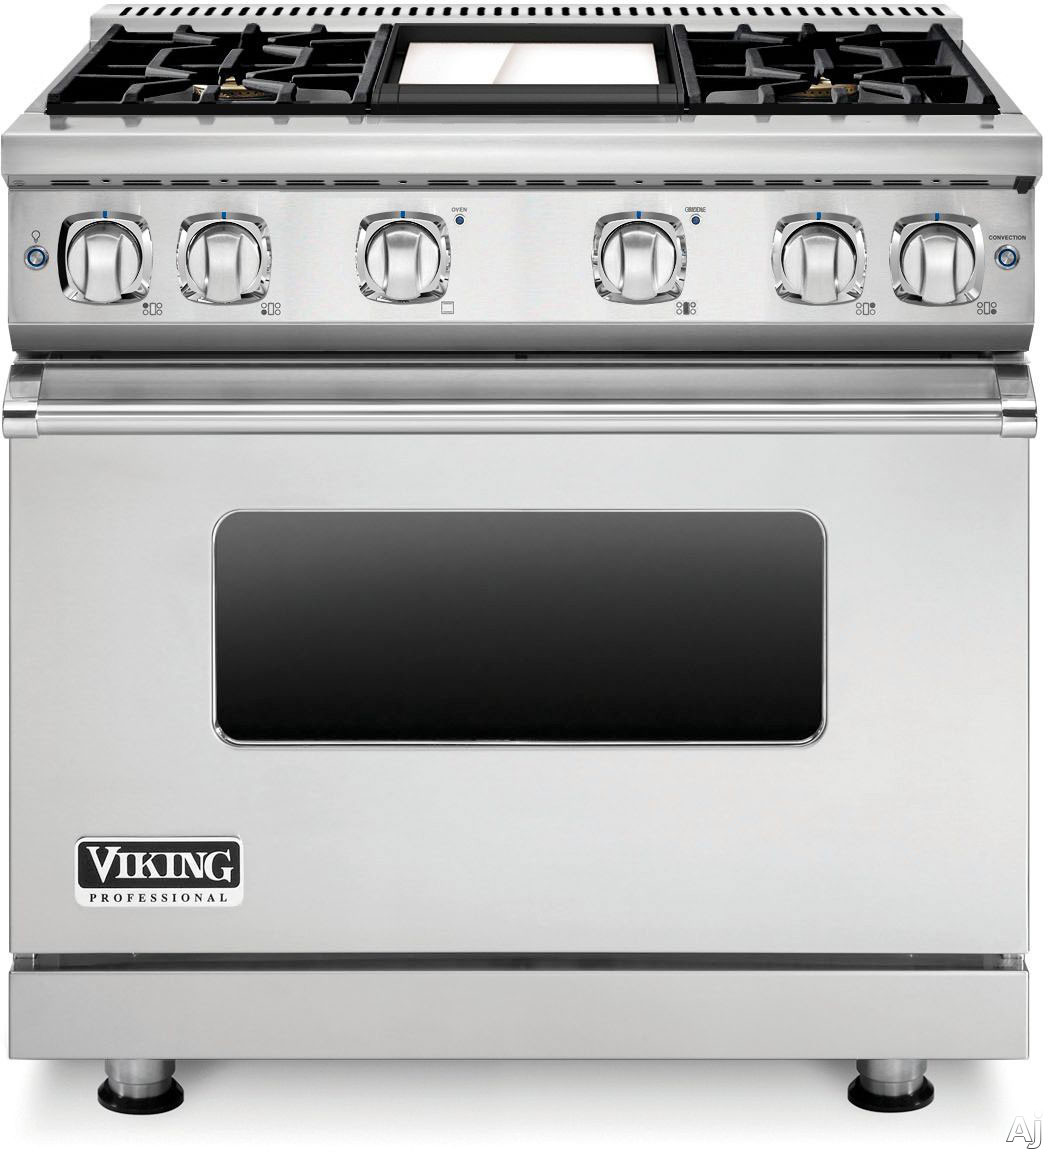 Viking Professional 7 Series VGR73614G 36 Inch Gas Range with Convection, ViChrome Griddle, Simmer Burners, 5.1 cu. ft. Oven, 4 Sealed Burners, Star-K Certified, Easy Clean Porcelain Interior and Dishwasher-Safe Knobs, Grates and Burner Caps